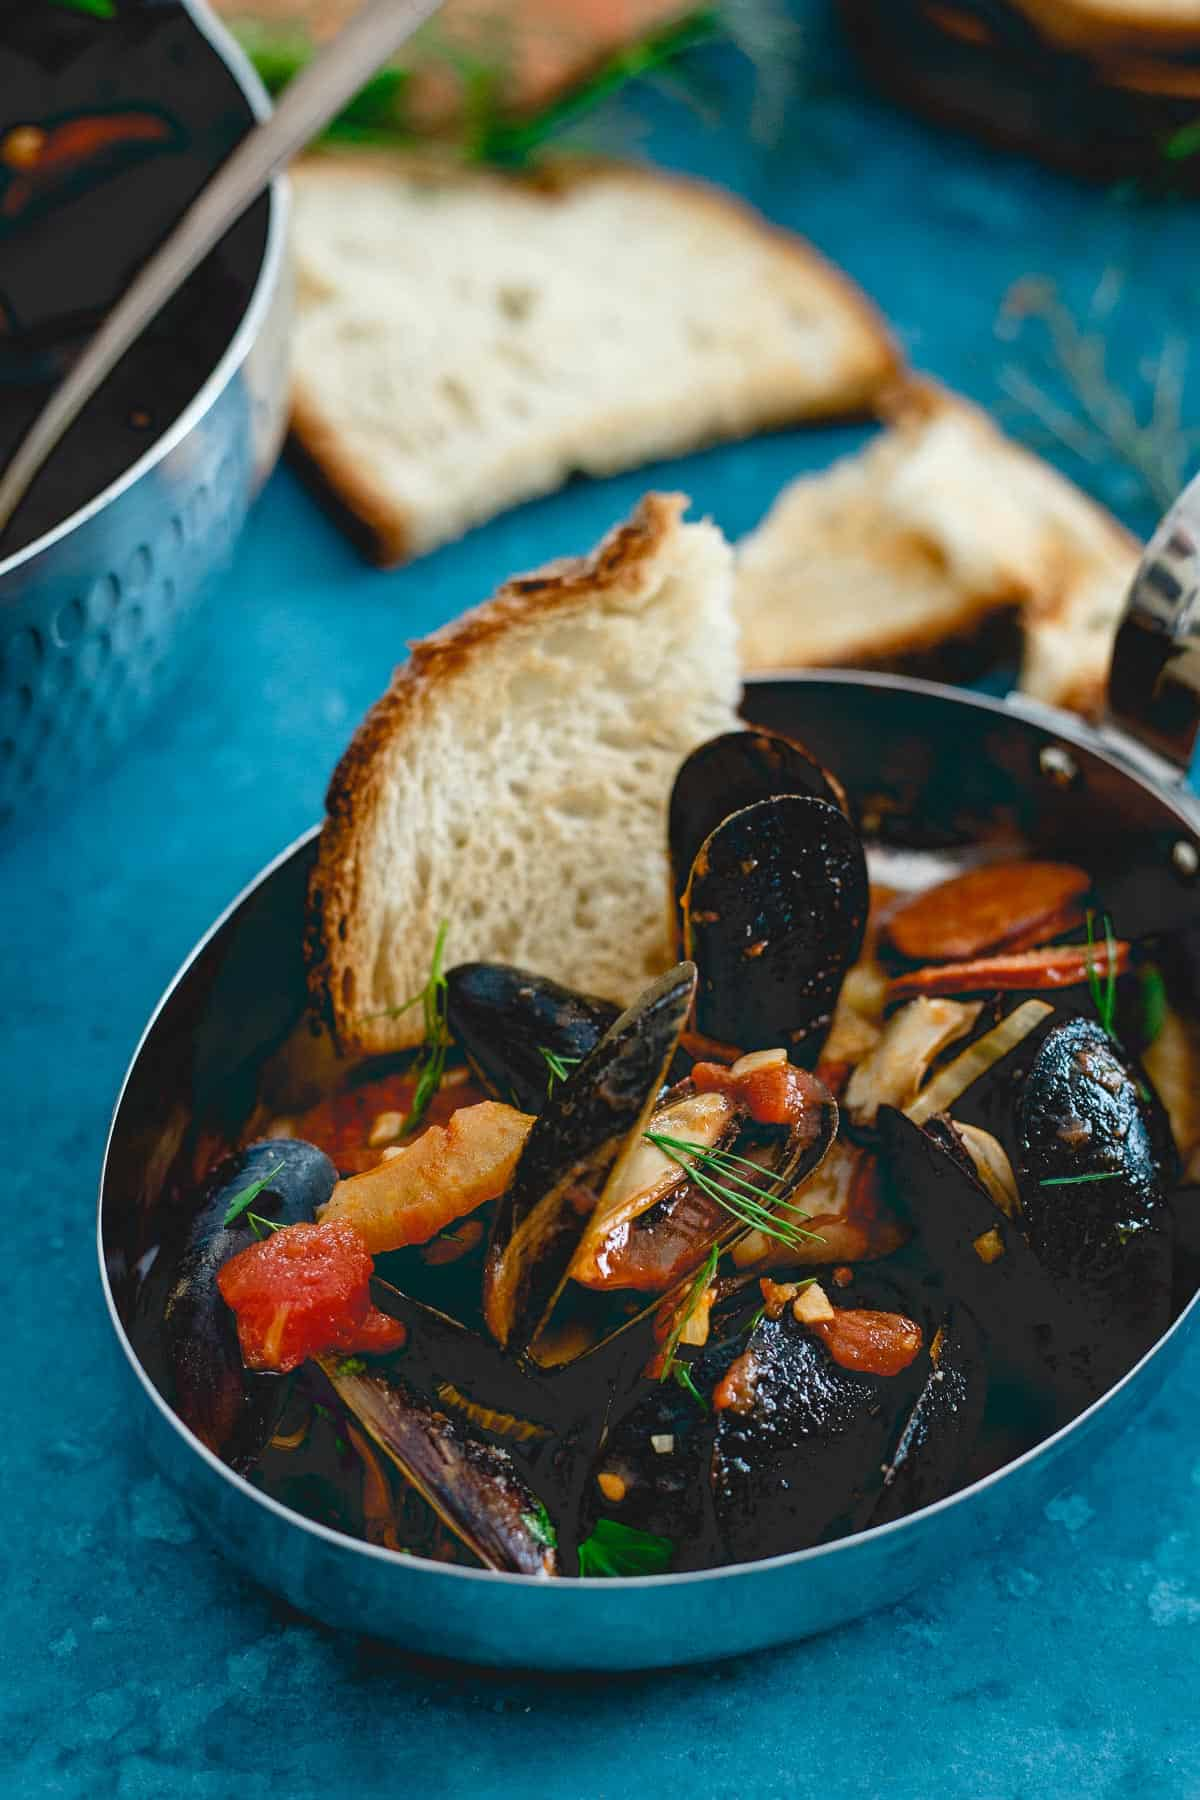 Soak up the delicious tomato broth in these chorizo chili mussels with some crusty warm bread.